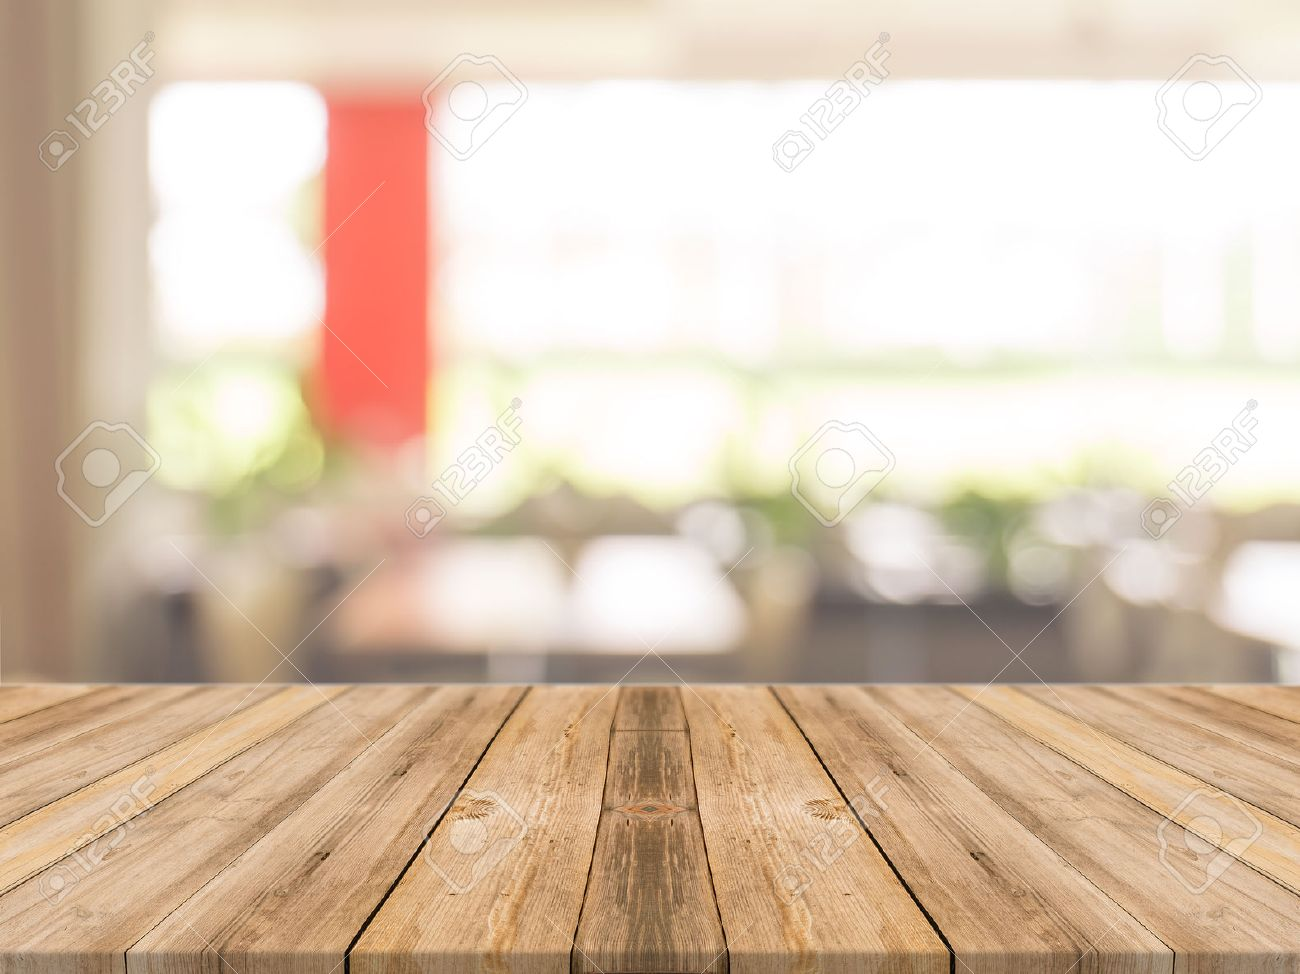 Empty wood table and blurred living room background stock photo - Wooden Board Empty Table In Front Of Blurred Background Perspective Brown Wood Over Blur In